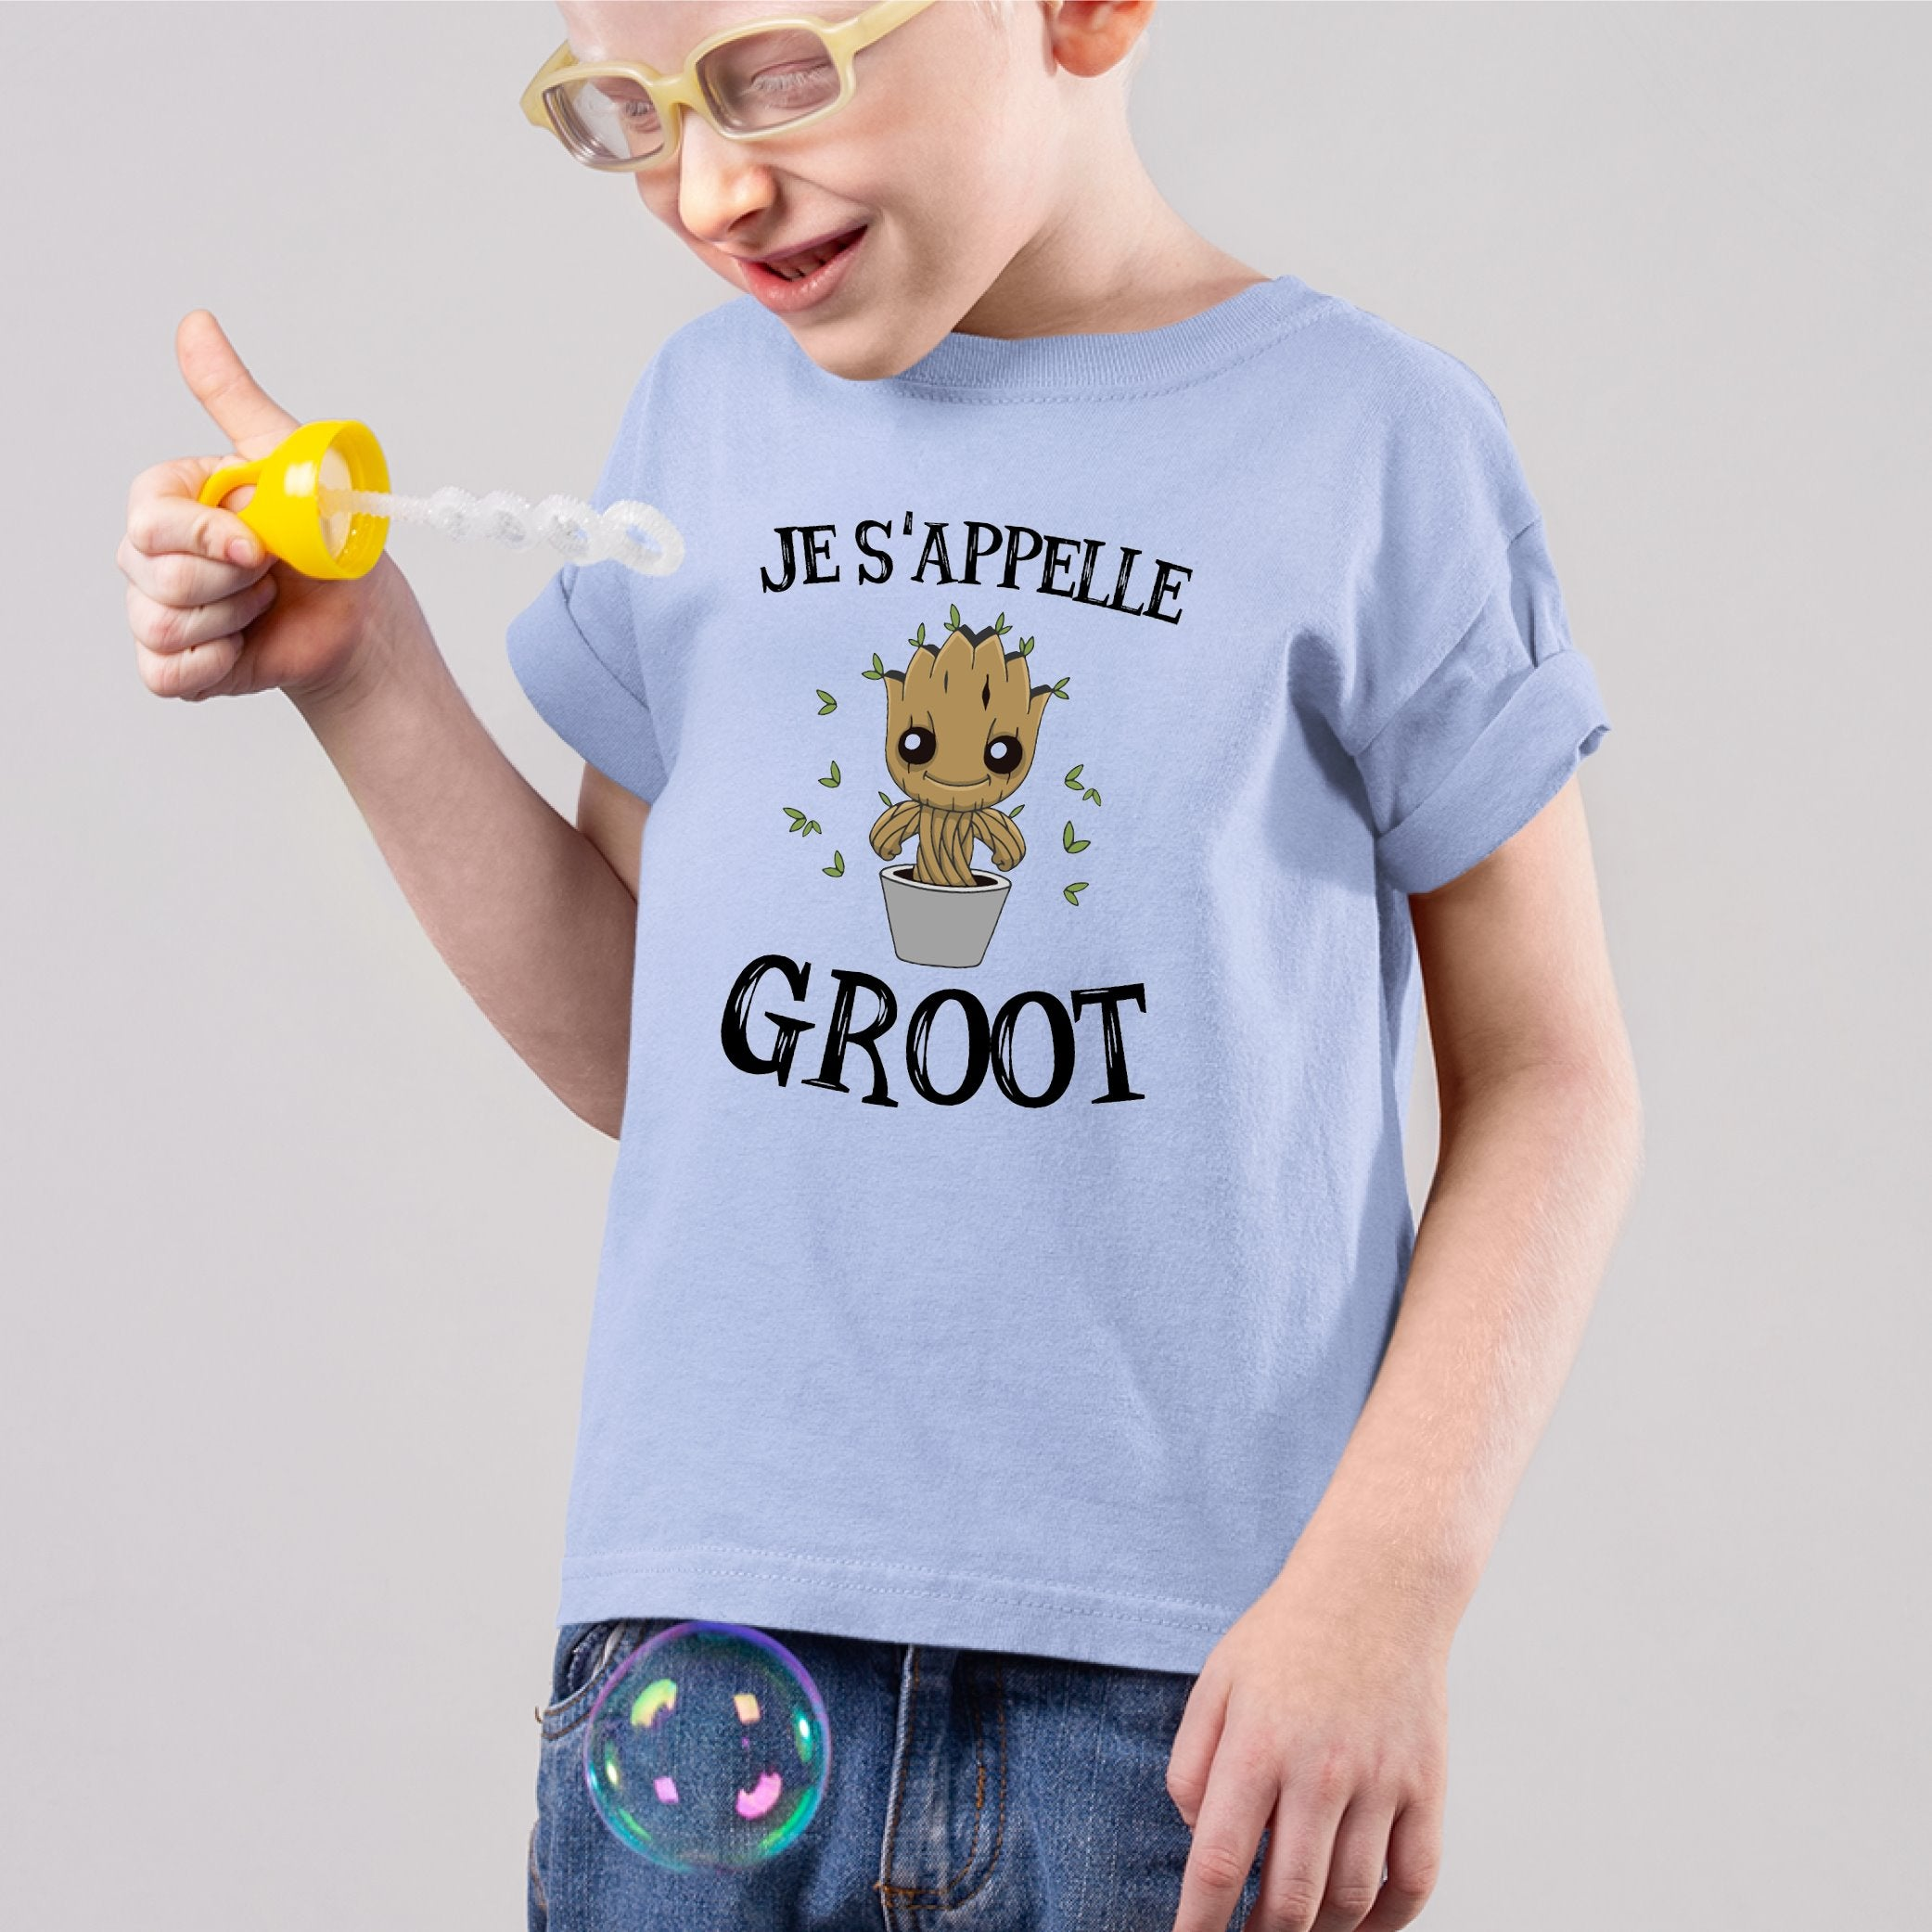 T-Shirt Enfant Je s'appelle Groot Bleu